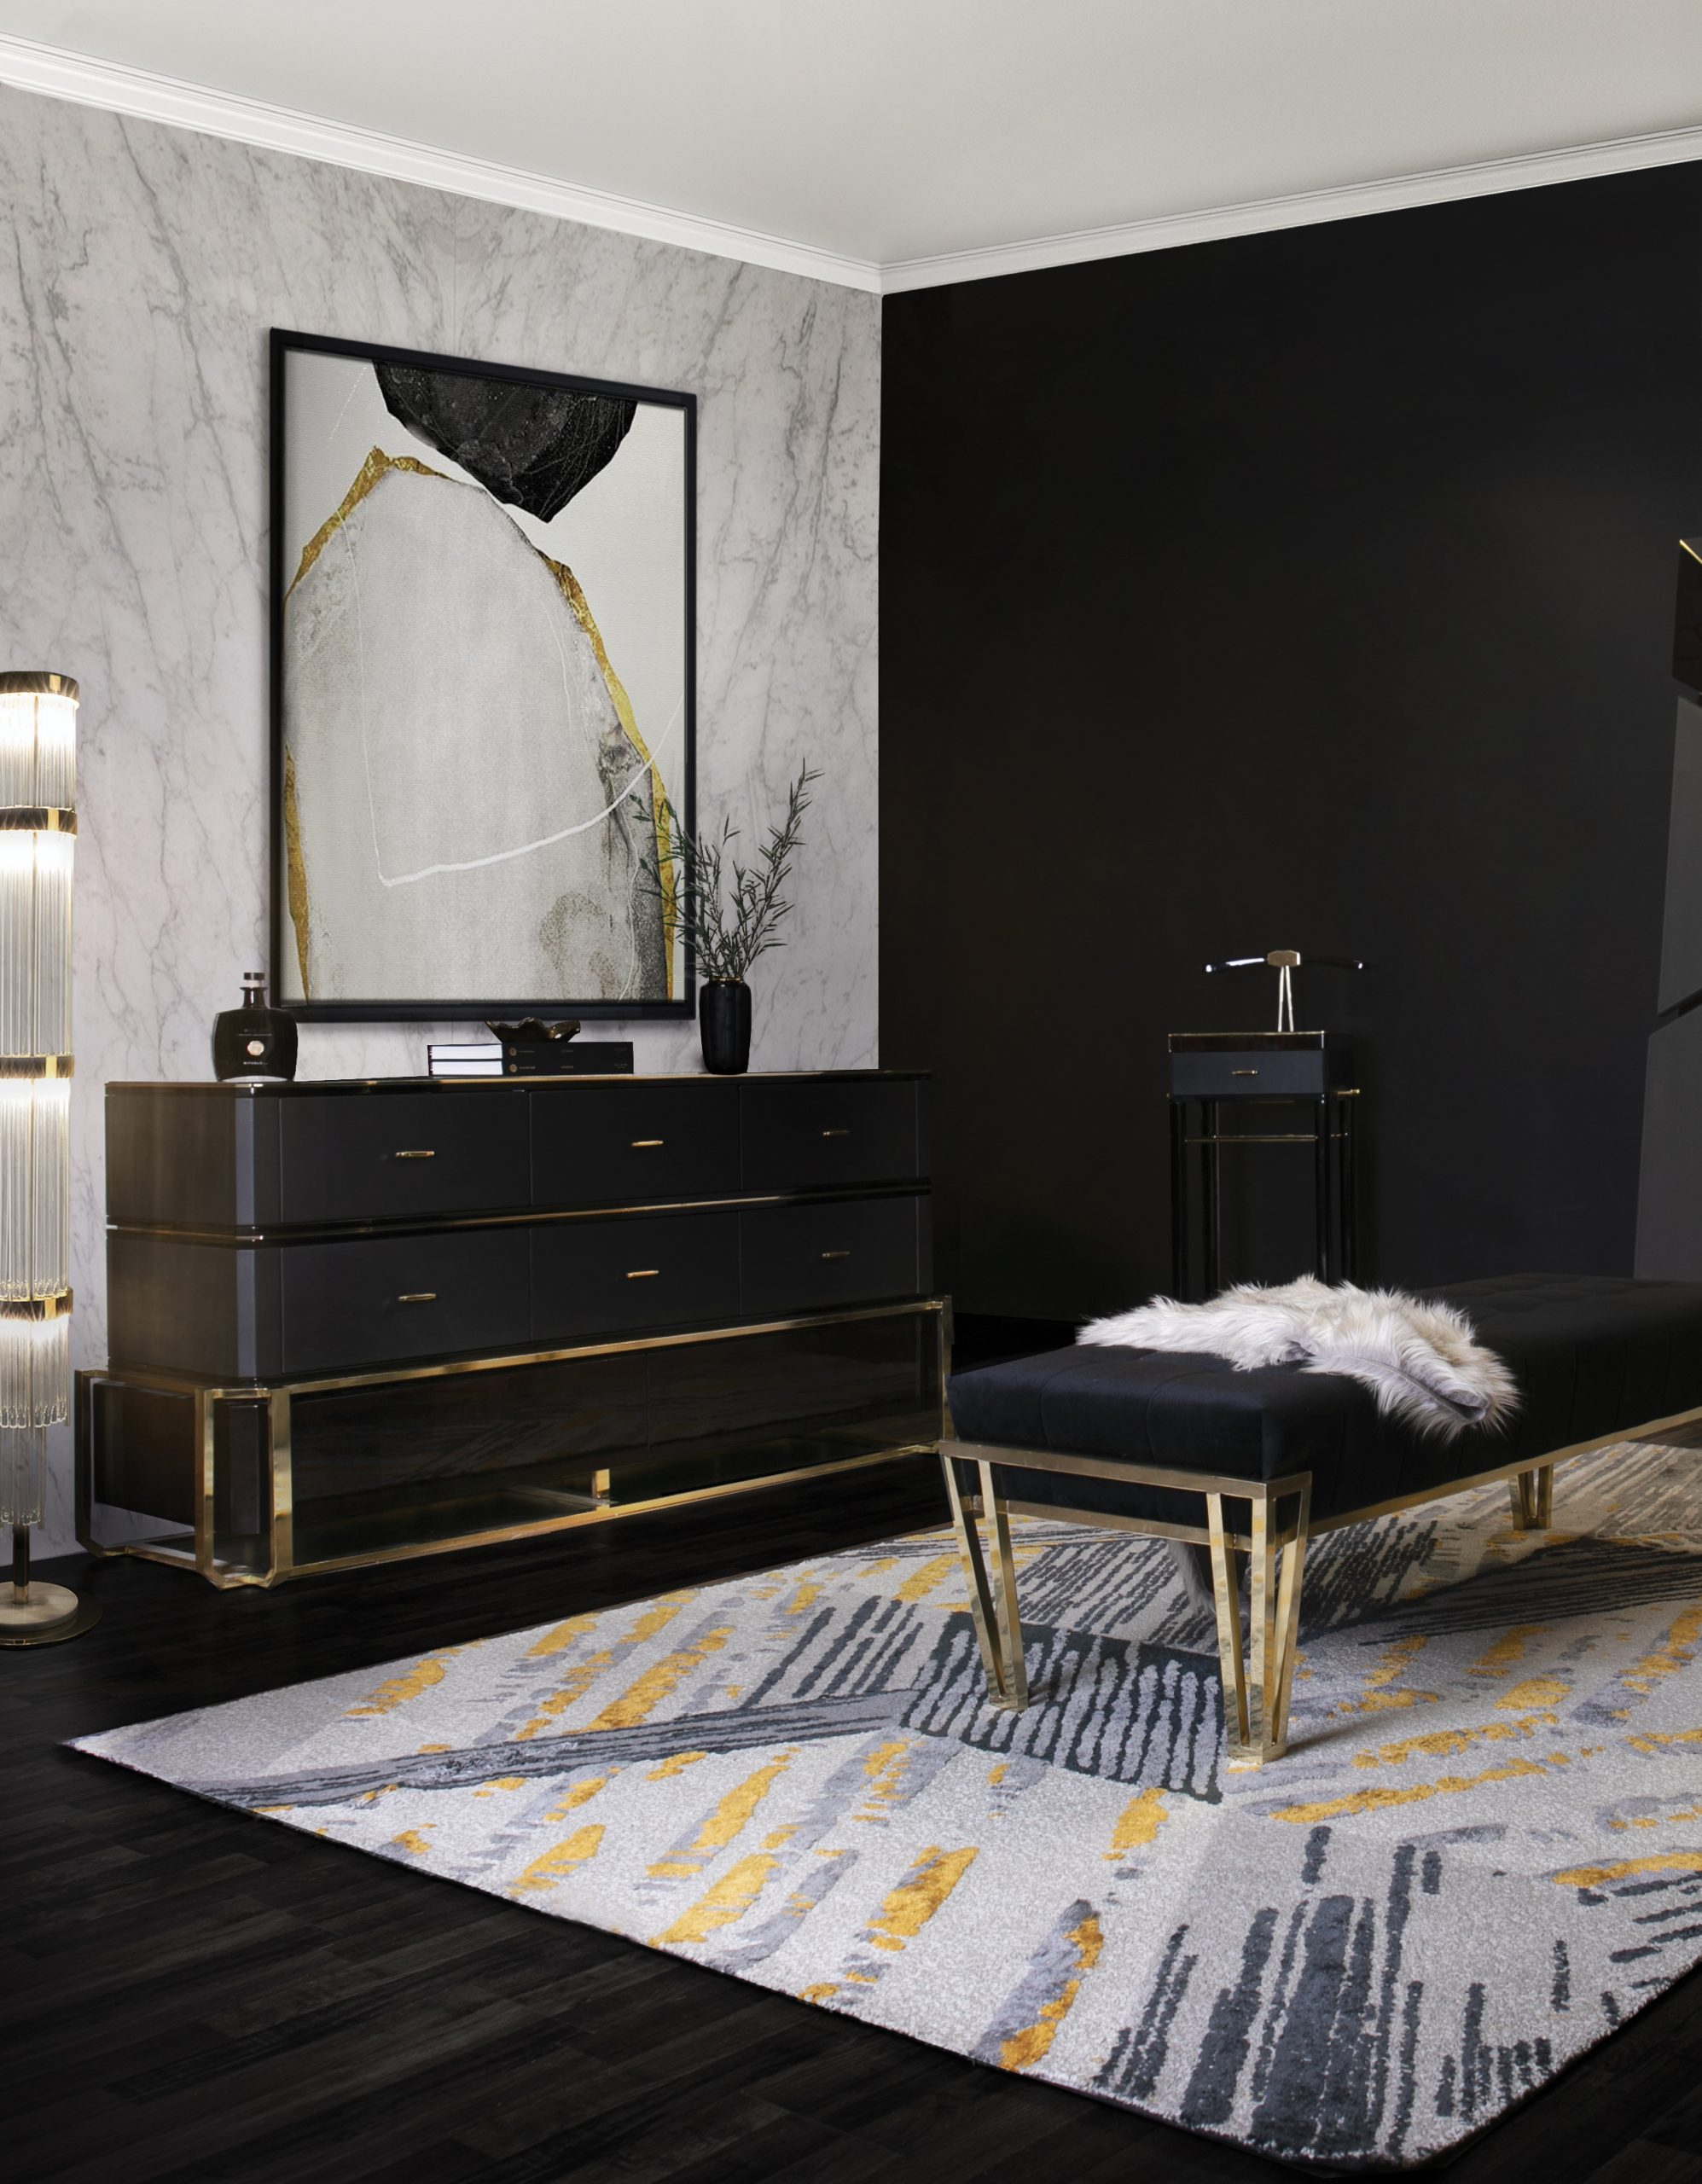 Bedroom Inspirations: All Products for an Exquisite Interior  bedroom Bedroom Inspirations: All Products for an Exquisite Interior waltz dresser 04 scaled